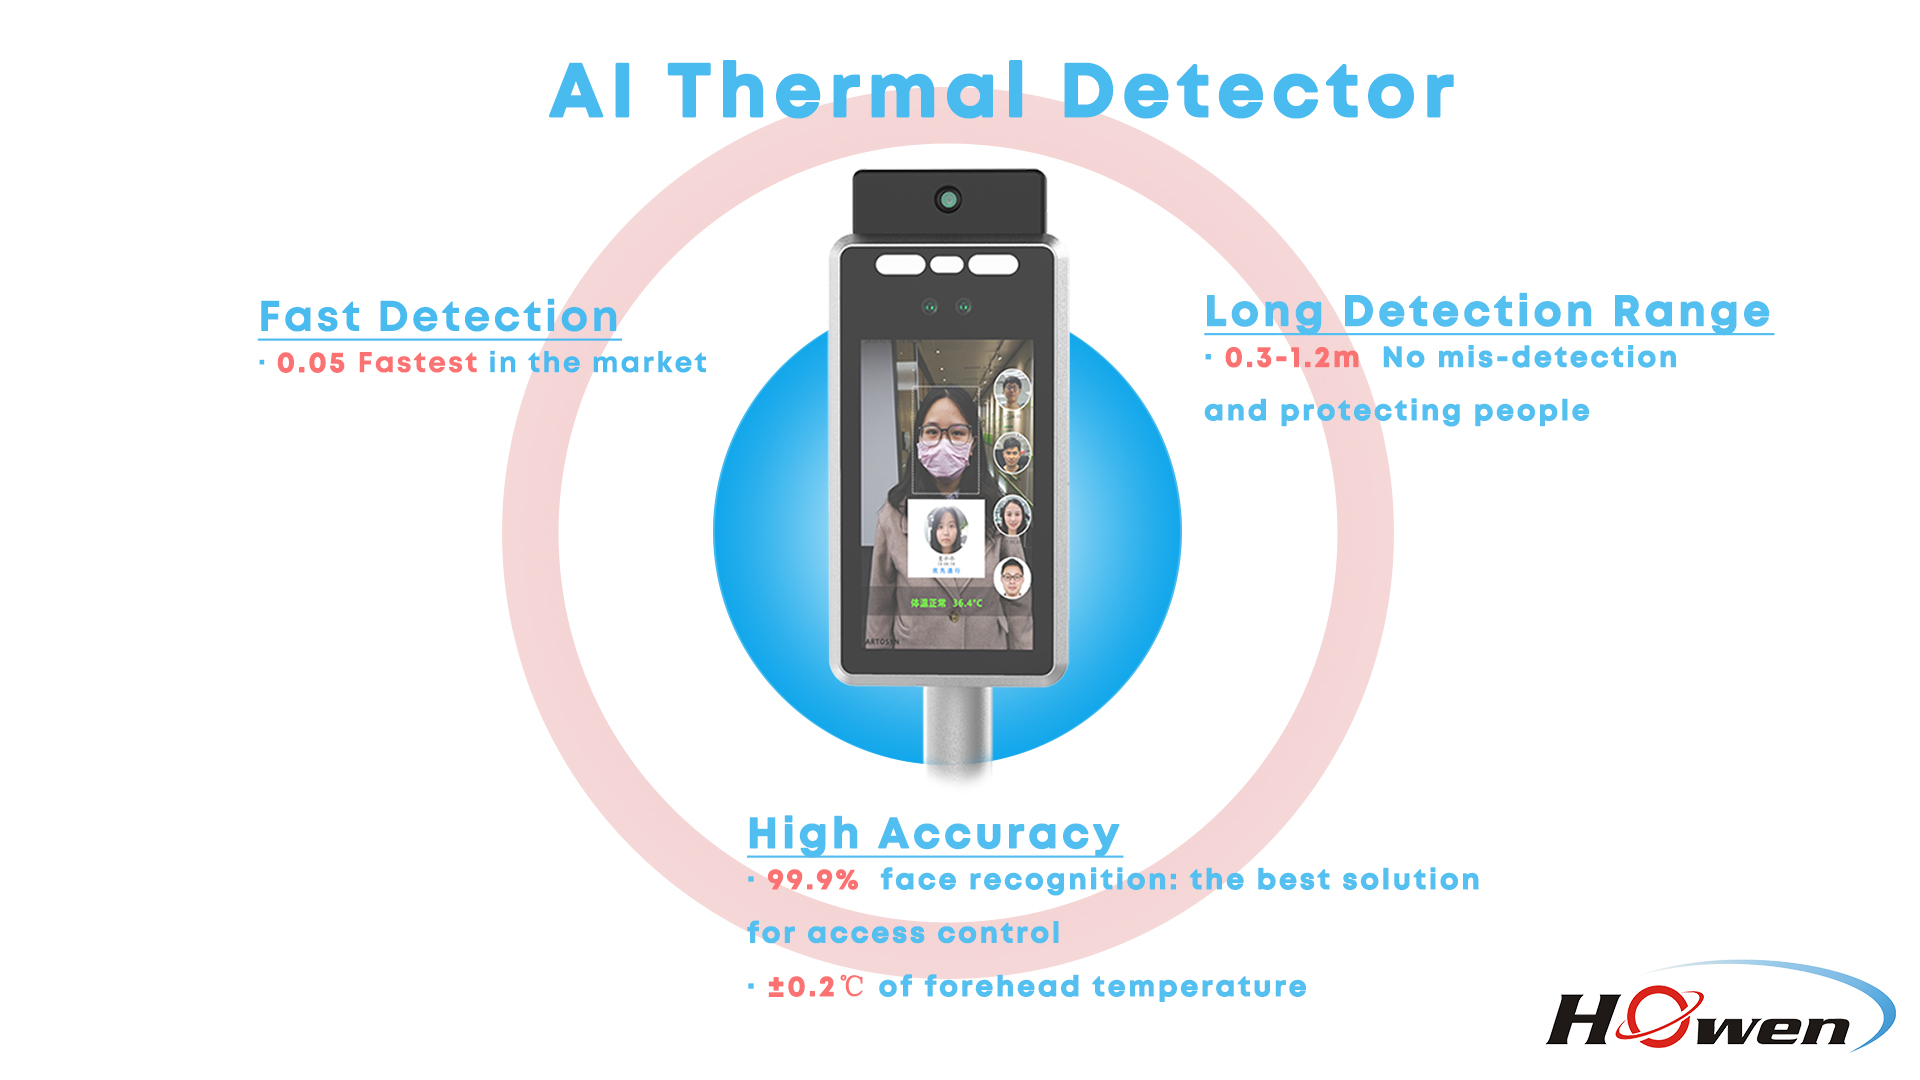 Key features of Howen AI thermal detector